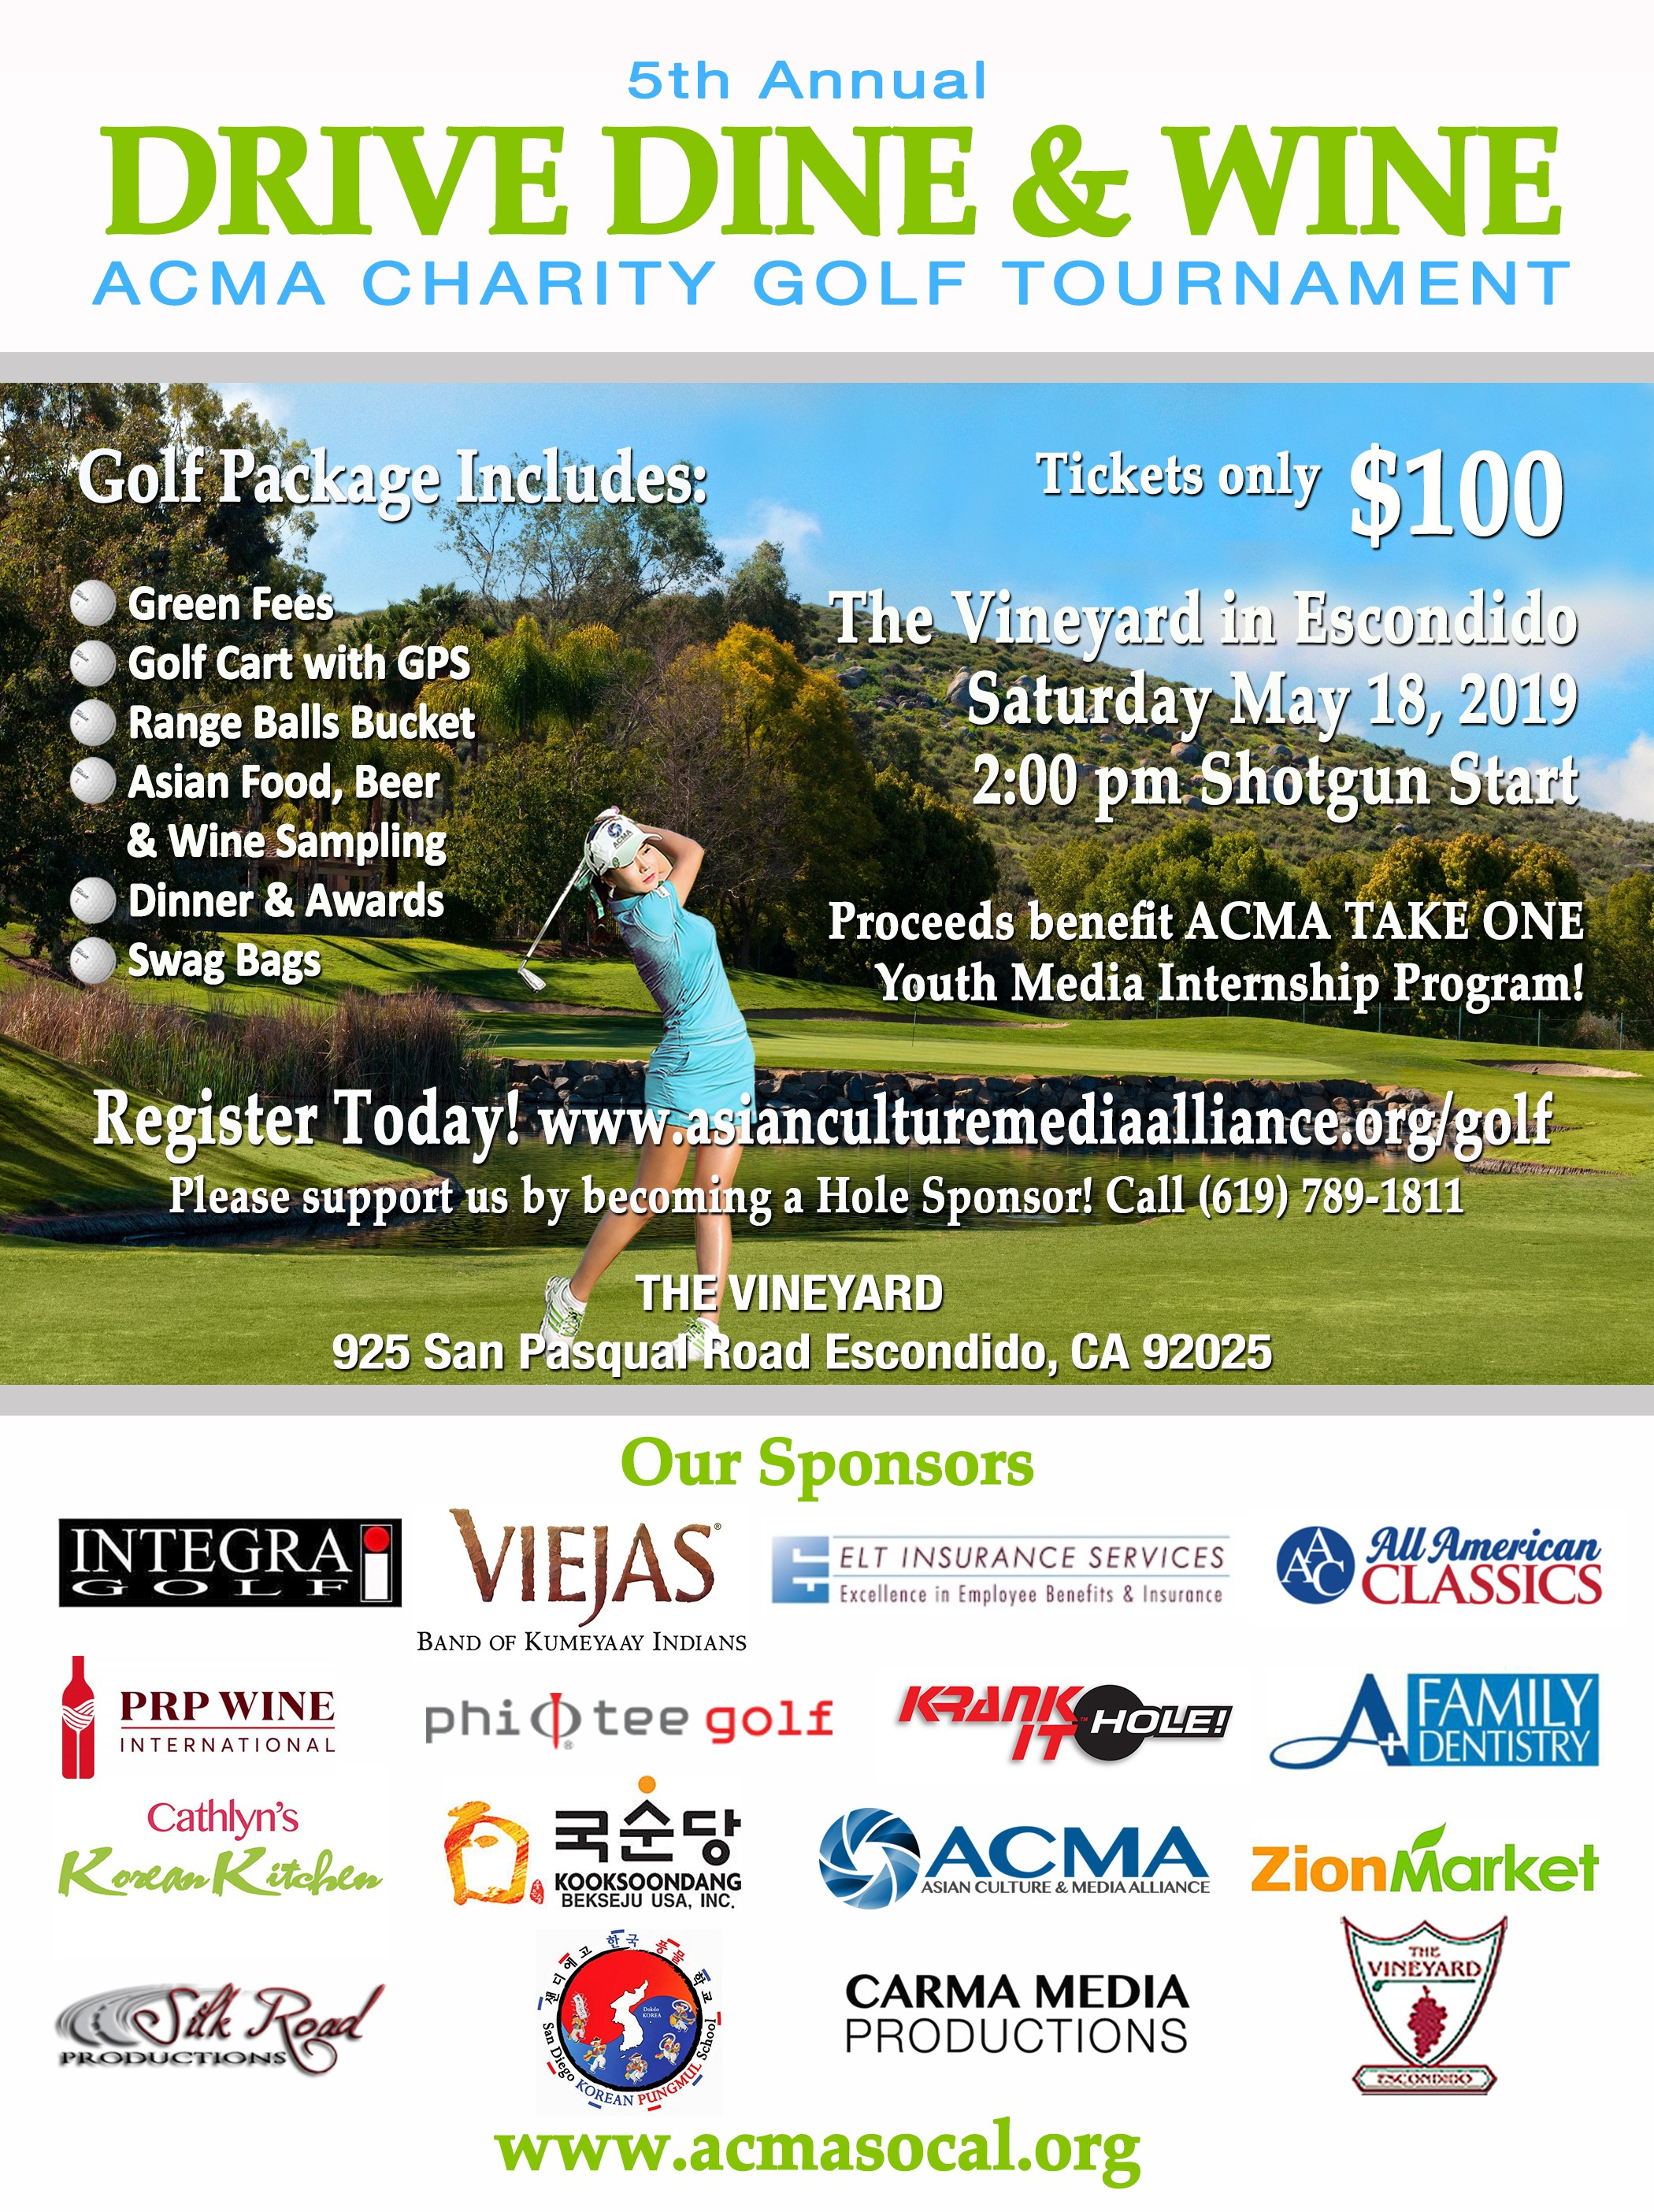 ACMA fifth annual Drive Dine and Wine Charity Golf Tournament